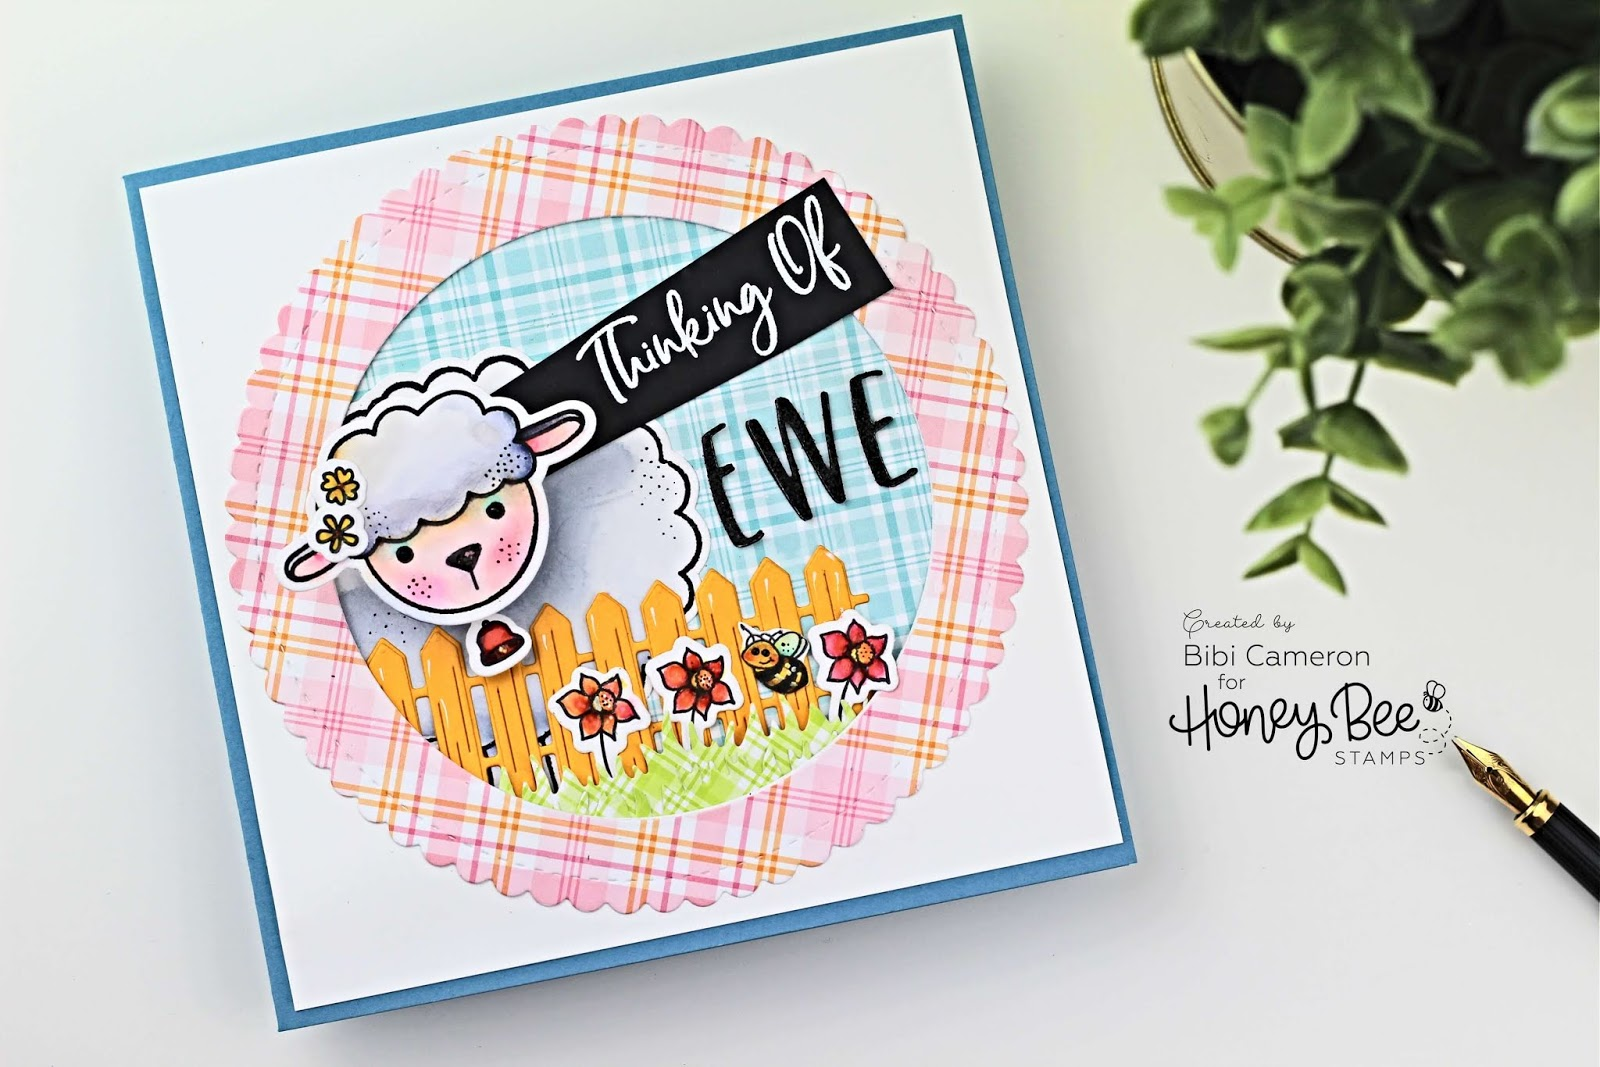 Lily the lamb by Honey bee stamps | kids cards with wobble action spring